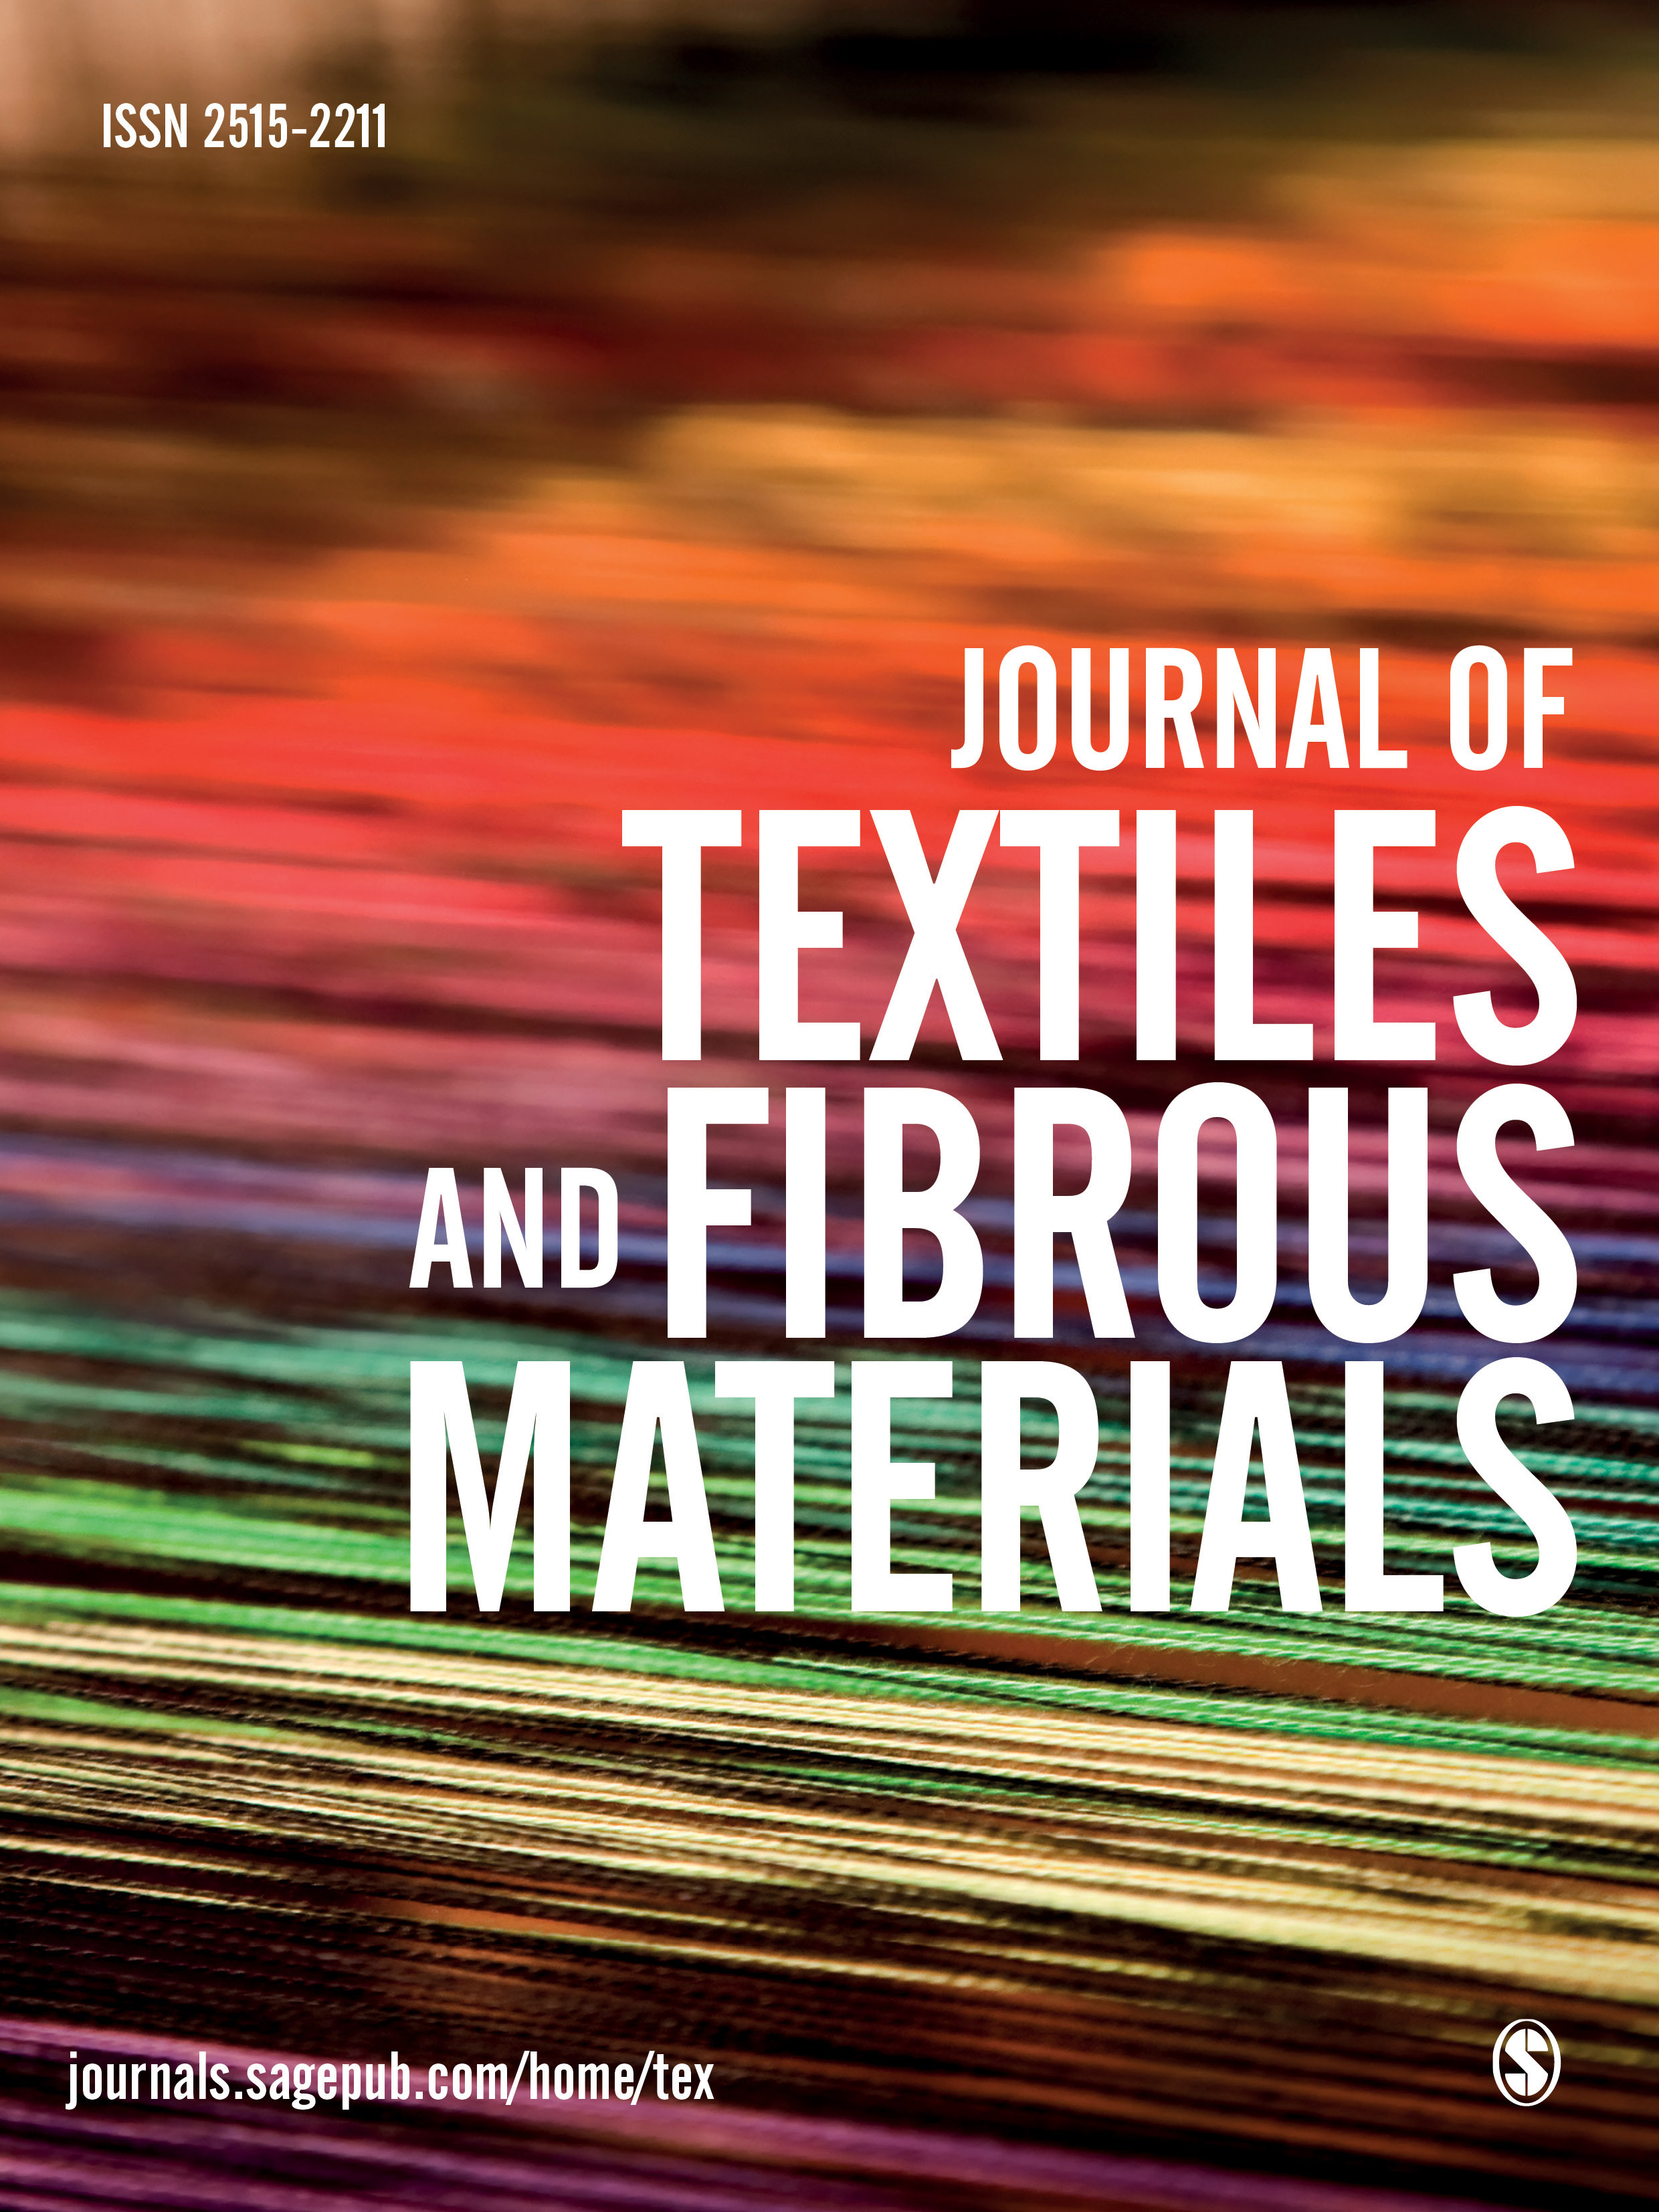 Journal of Textiles and Fibrous Materials